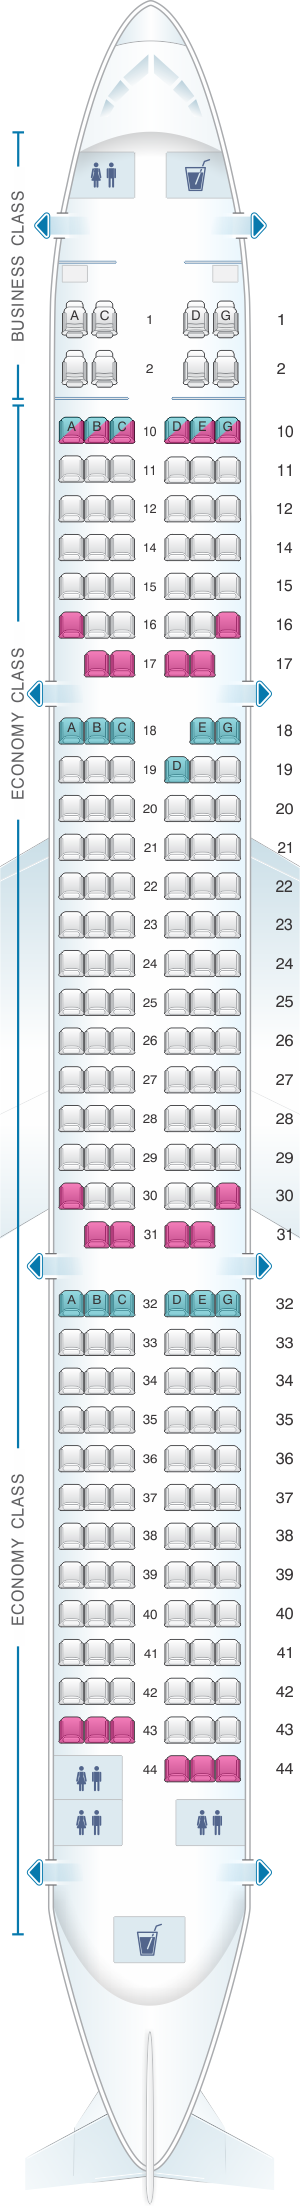 Seat map for Vietnam Airlines Airbus A321 Config.3